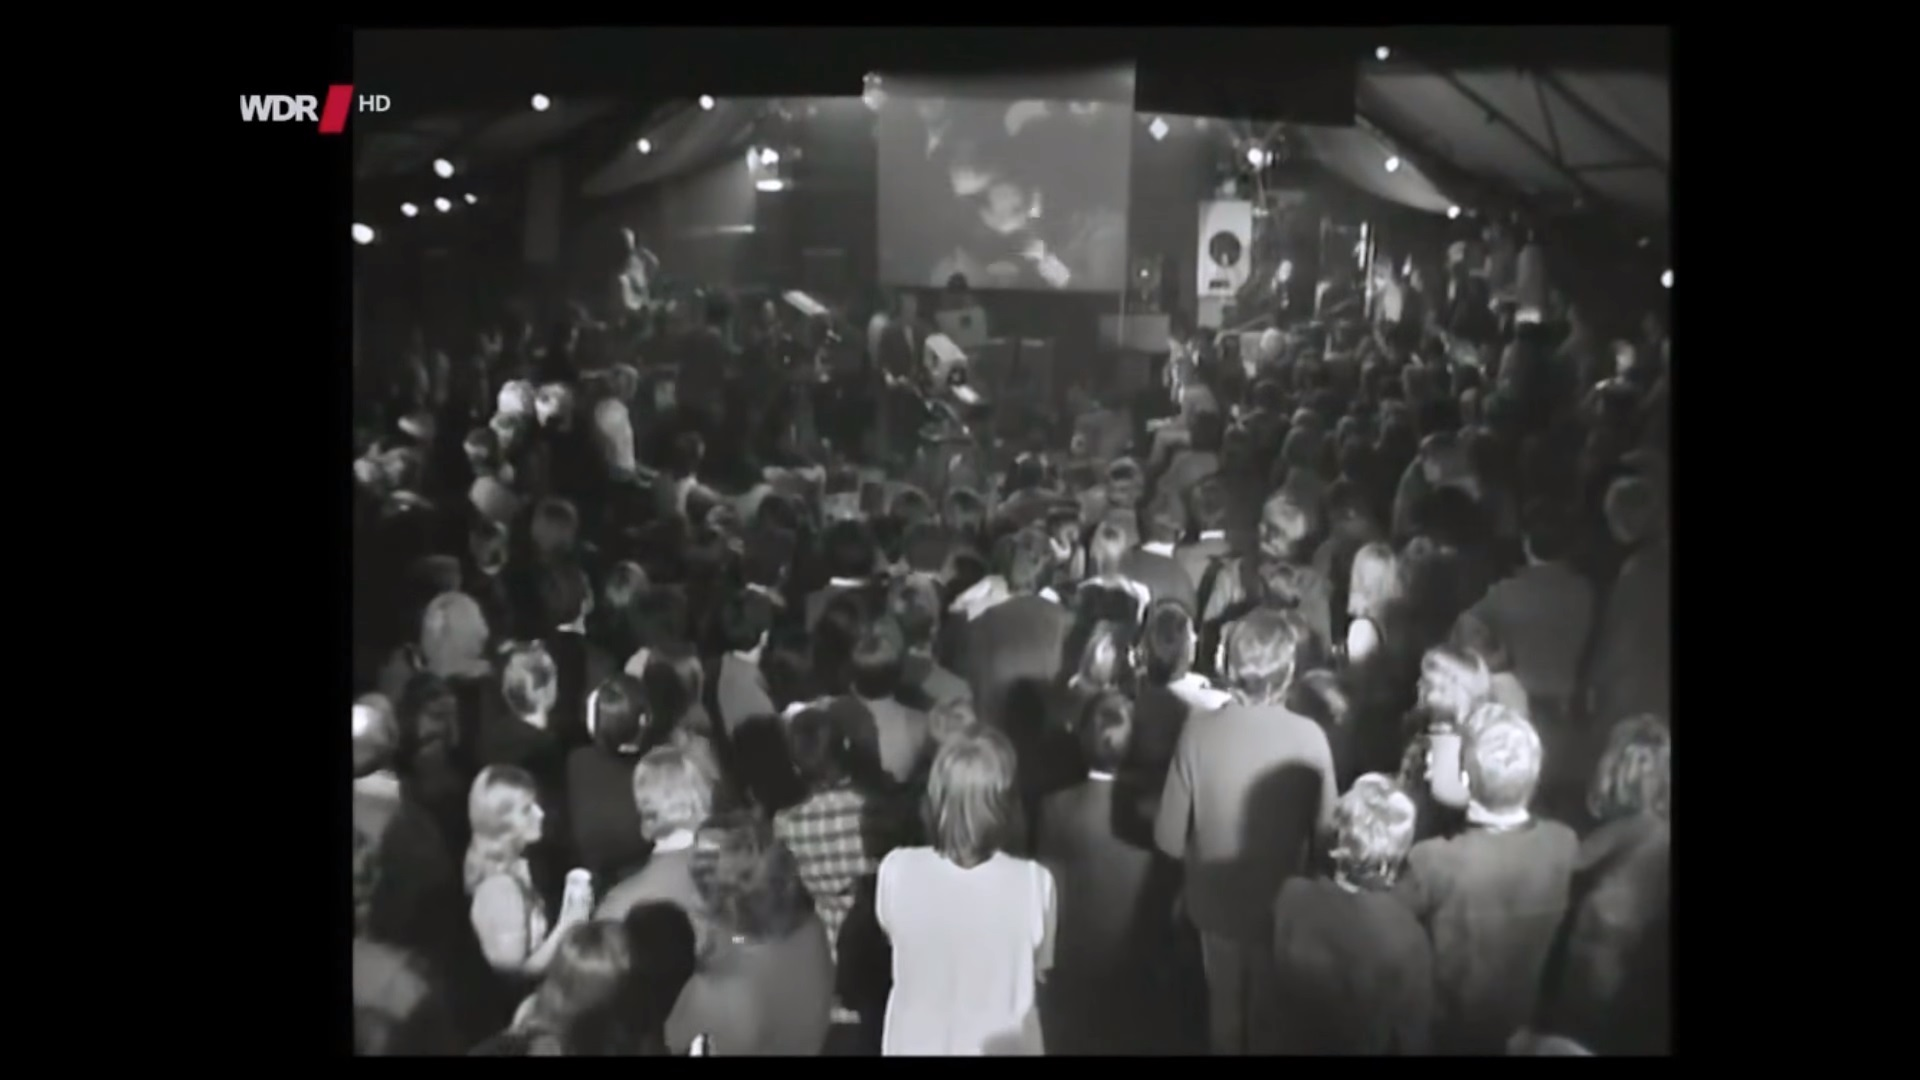 watch-kraftwerk-the-fathers-of-electronic-music-play-to-a-confused-crowd-in-1970-social.jpg